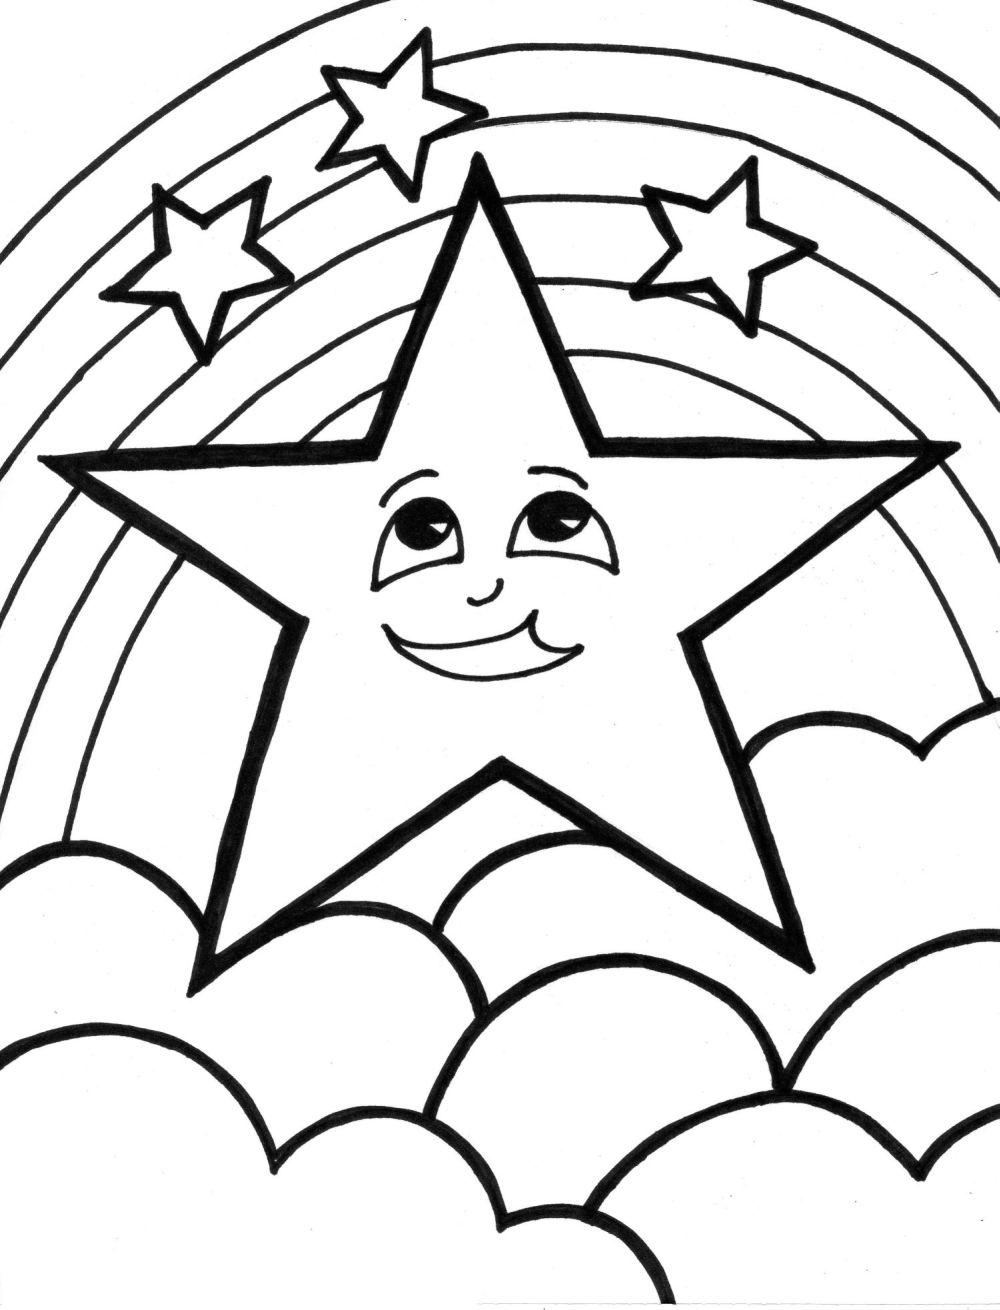 1000x1310 Free Printable Star Coloring Pages For Kids Star Birthday Party